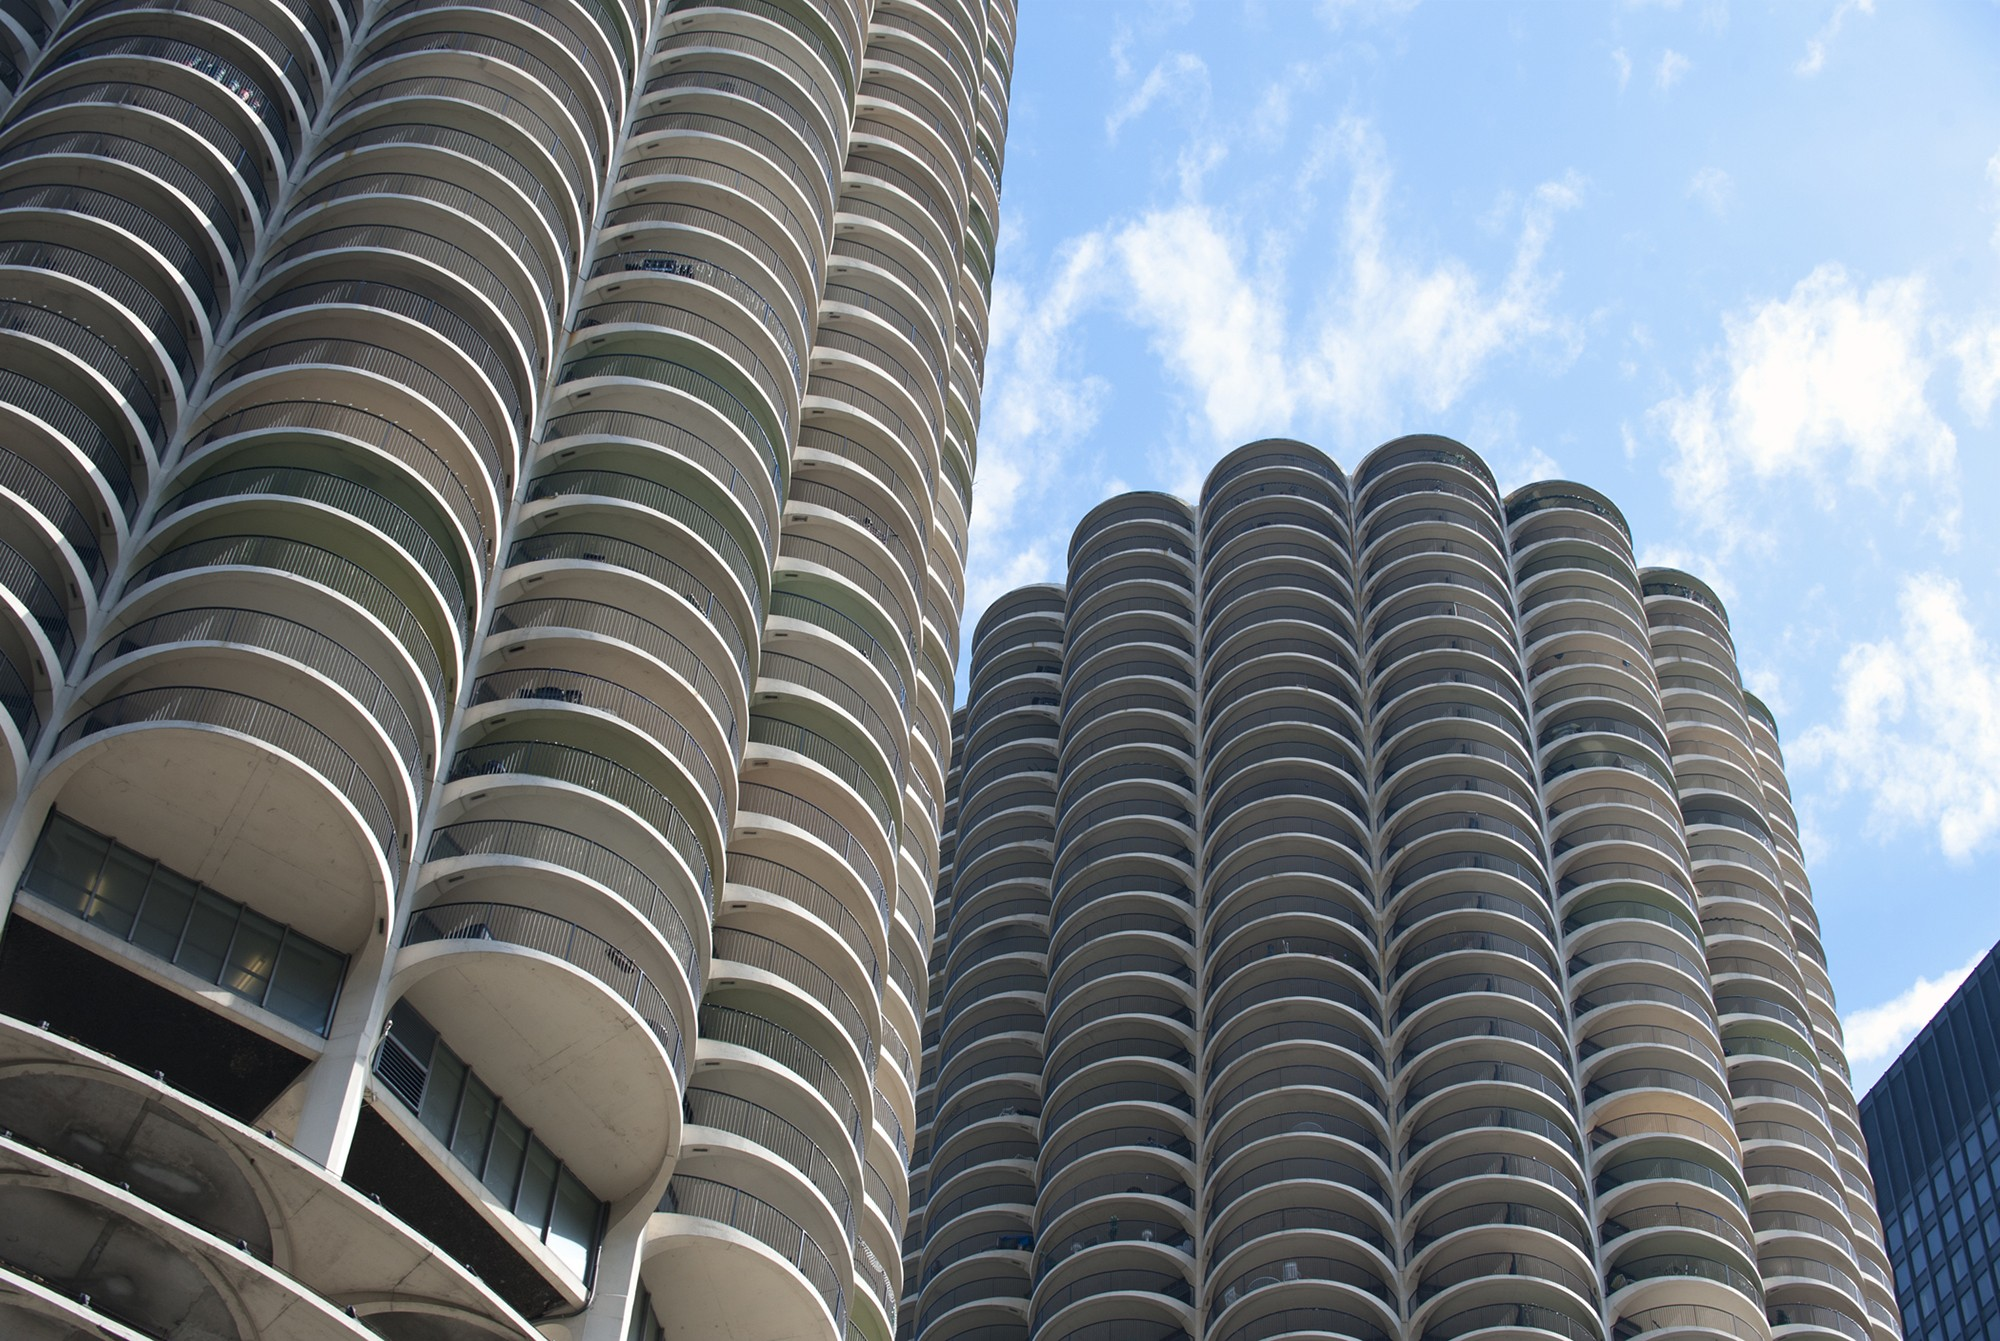 Modern Architecture City marina city · buildings of chicago · chicago architecture